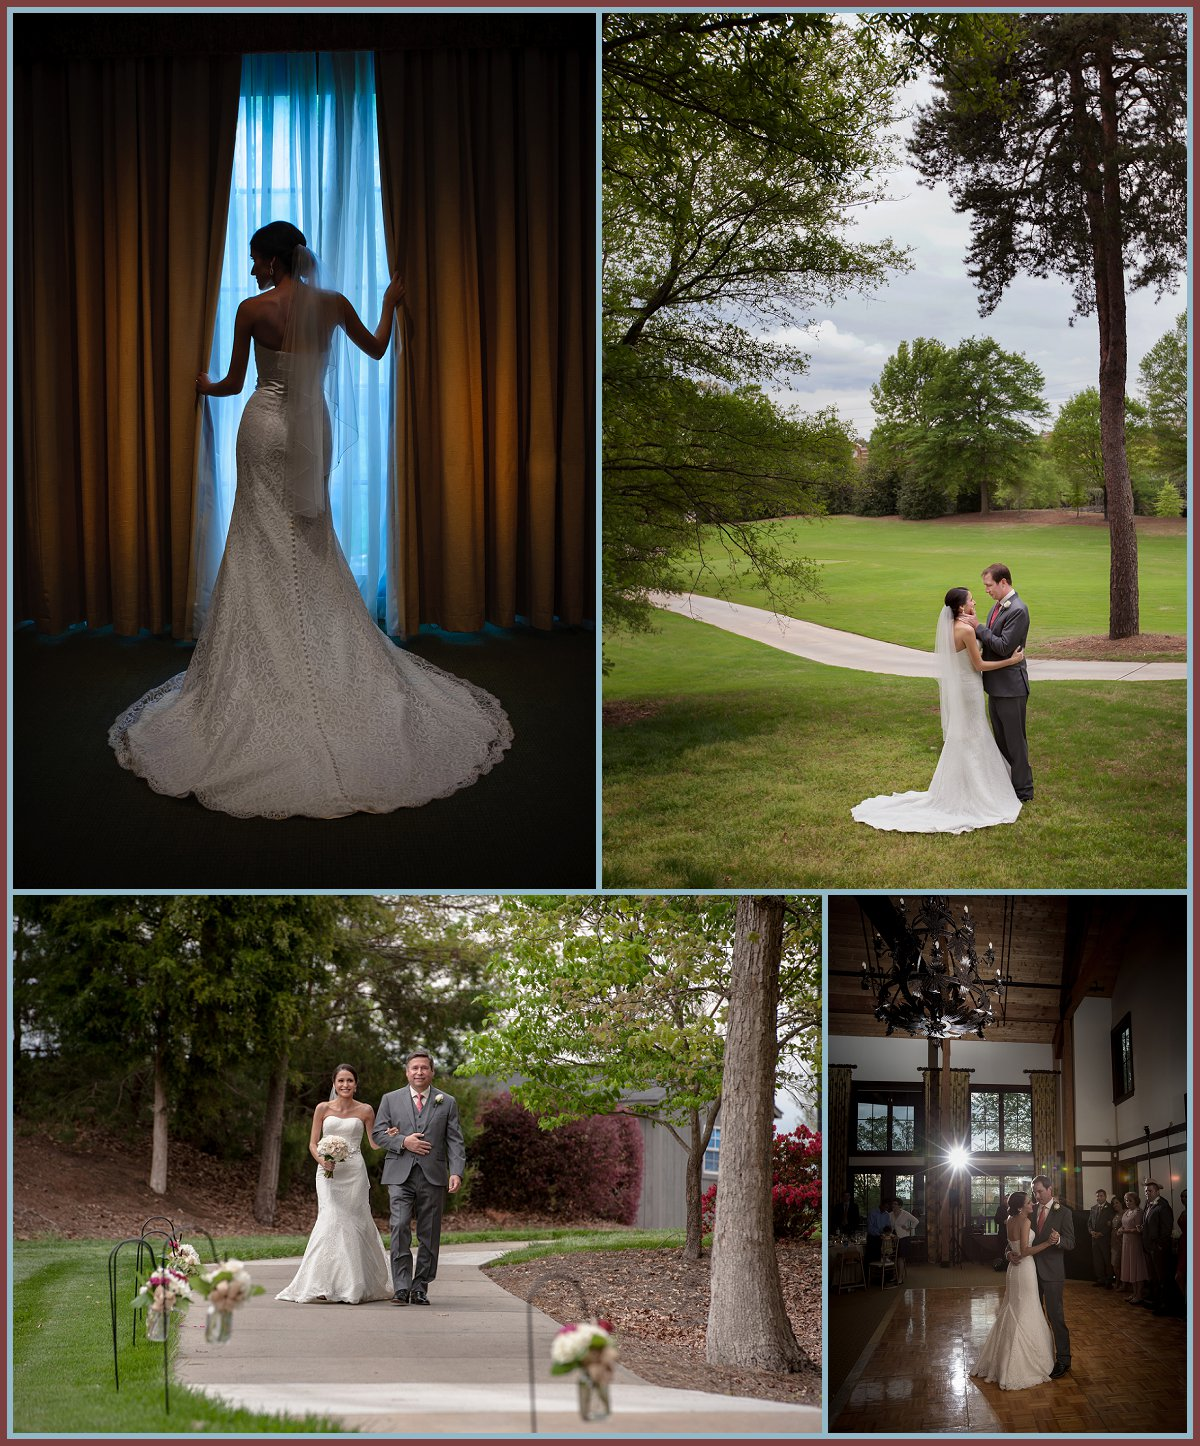 The Top 5 Places to Have Your Wedding in Charlotte NC